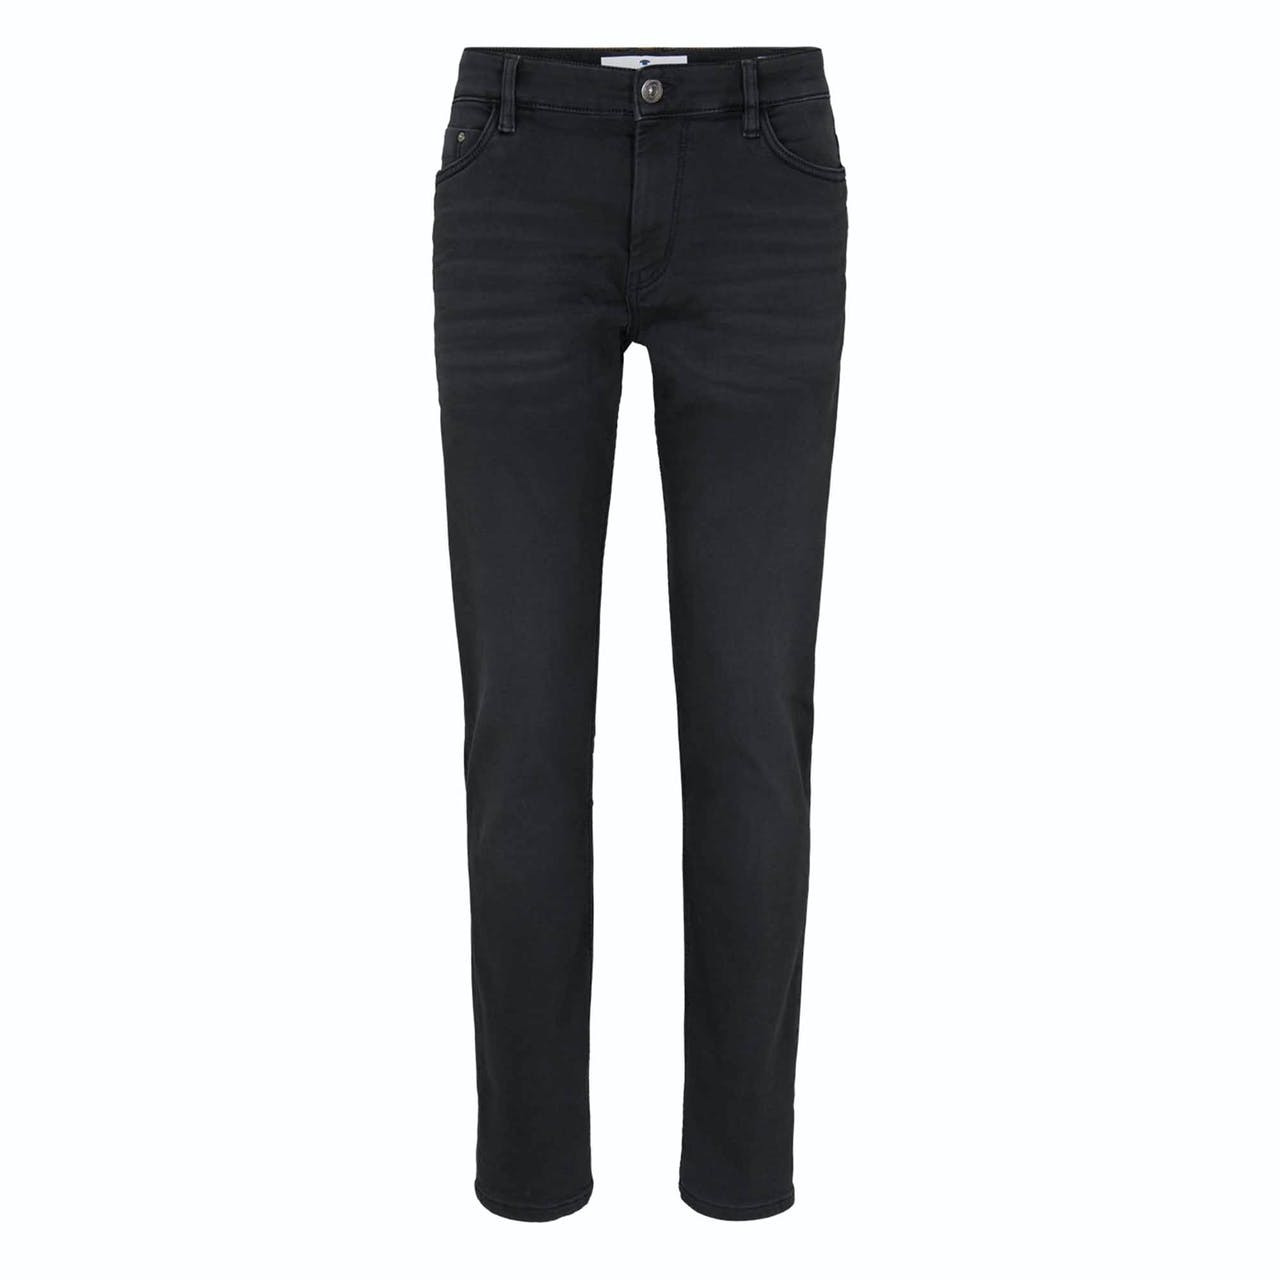 Jeans - Slim Fit - Material-Mix